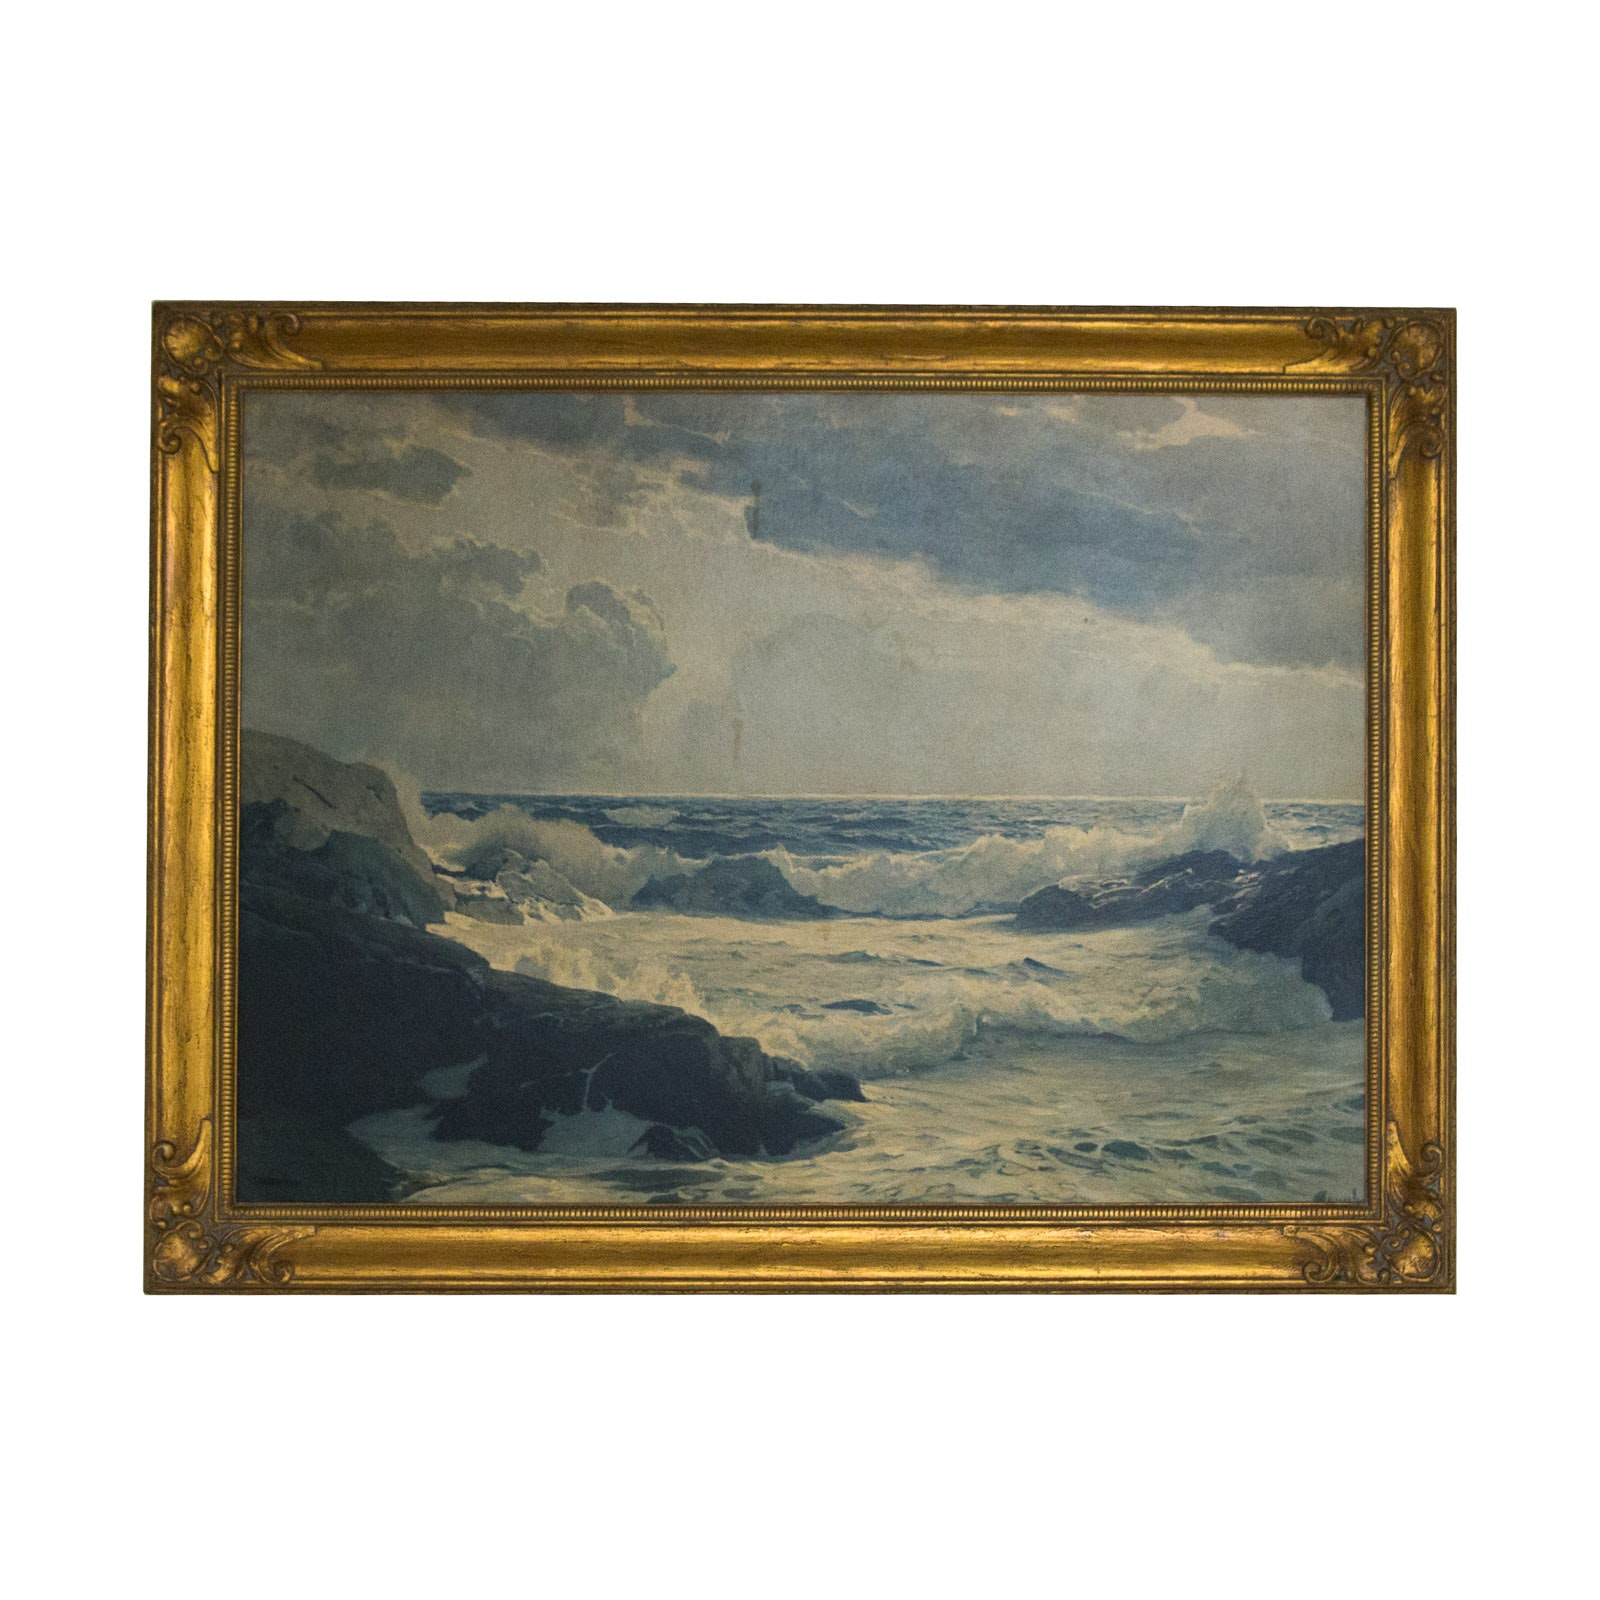 Reproduction Print after Frederick Judd Waugh Coastal Scene